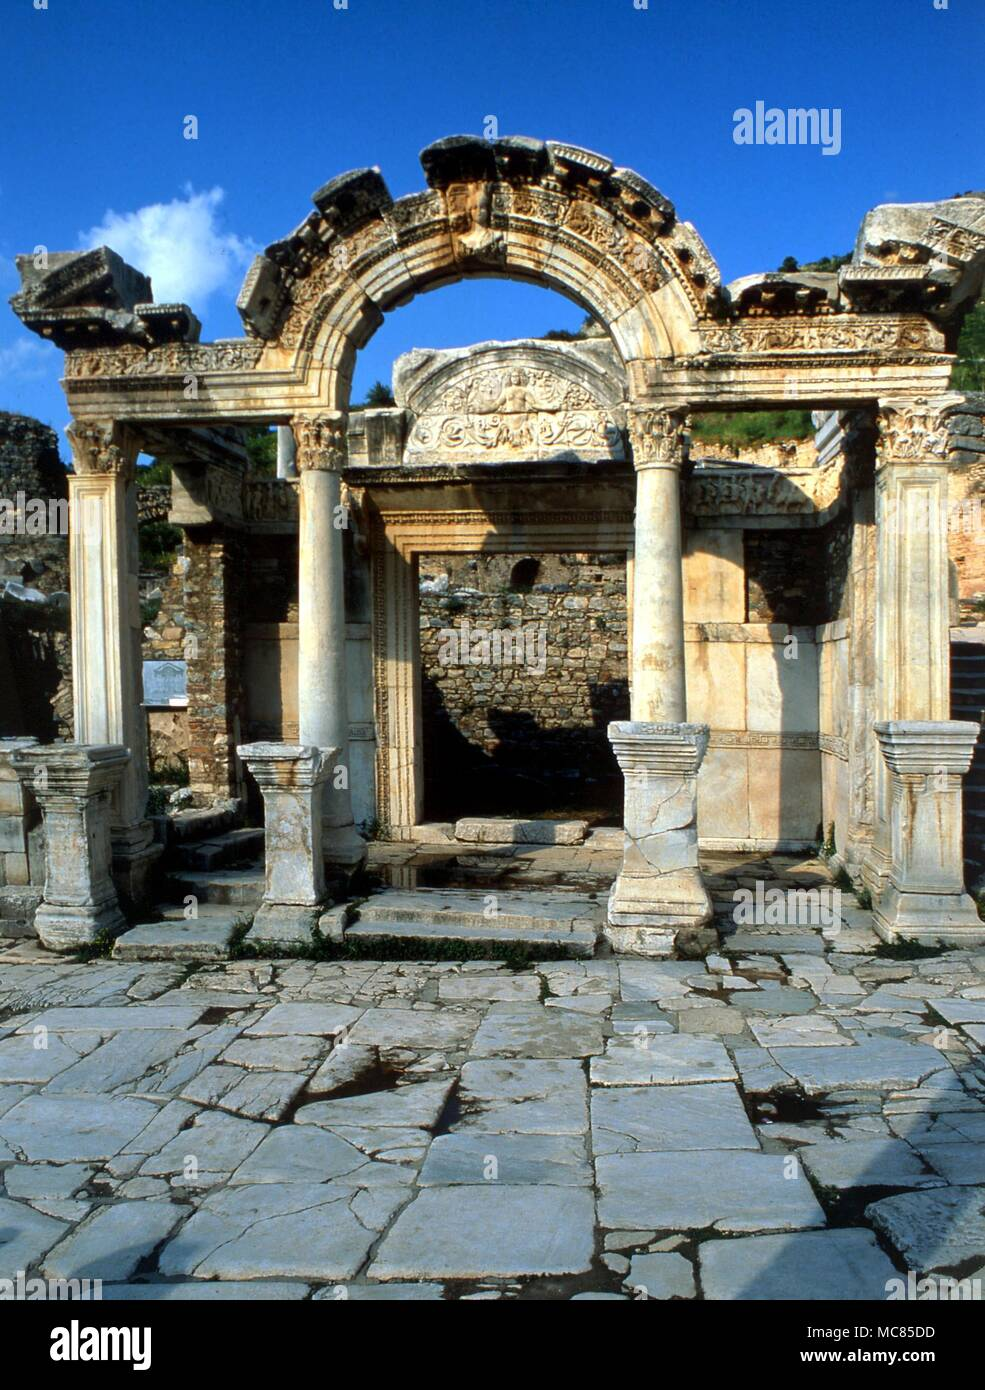 The ancient Roman temple of the Emperor Hadrian , on the Sacred Way at Ephesus, Turkey. Ephesus was the site where a Mother Goddess was first worshipped, where earth and heaven met, in Diana of Ephesus, and (later) where the cult of the Virgin Mary was ratified. - Stock Image